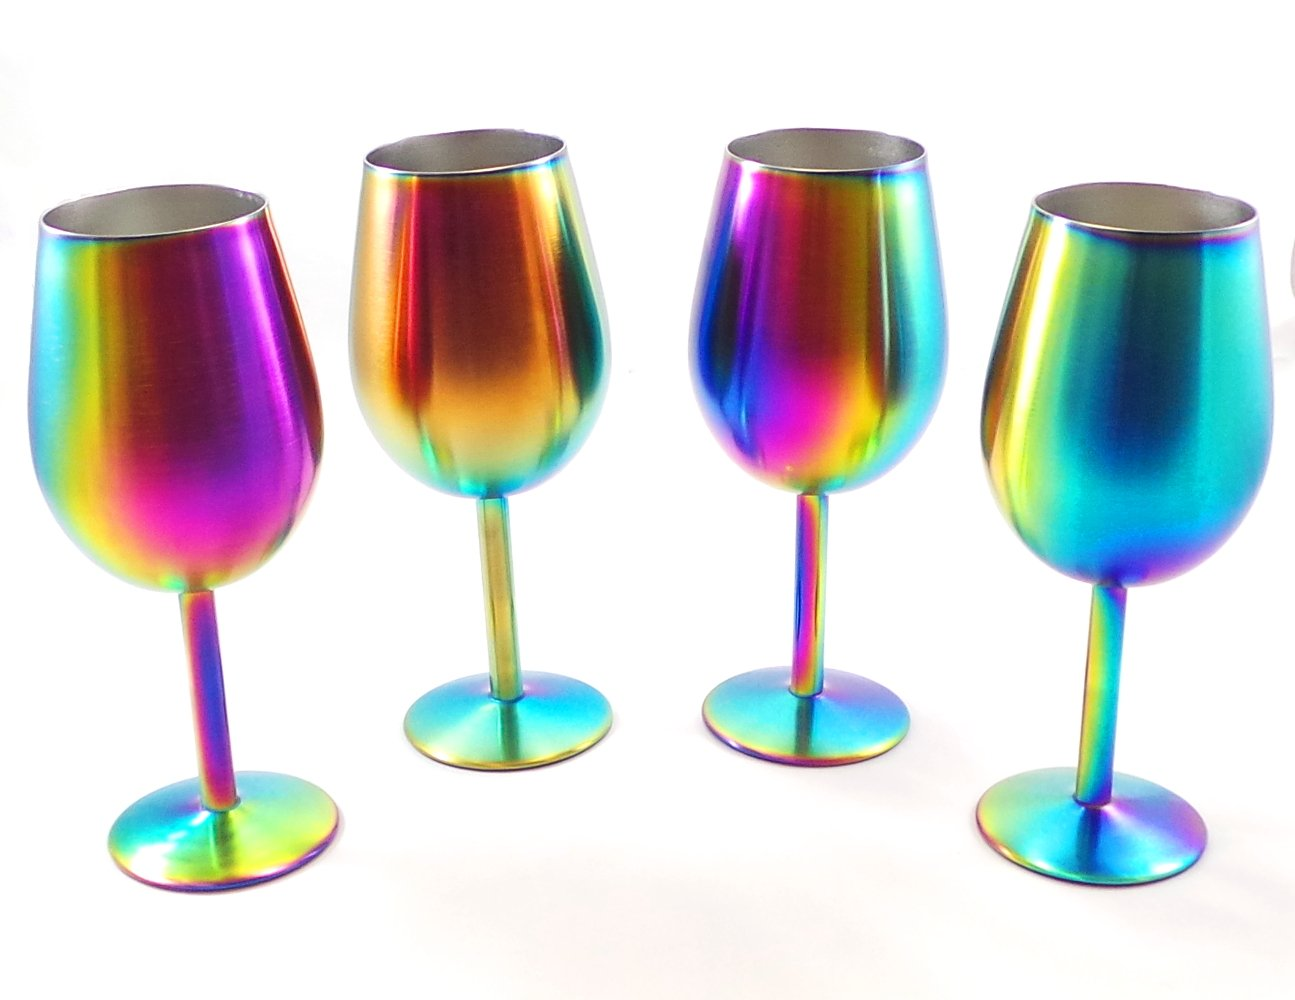 Shatterproof Stainless Steel Wine Glasses (Set of 4), Titanium Rainbow Colored Finish, Lids Included, Long Stemmed by Great Spirit Wares (Image #1)